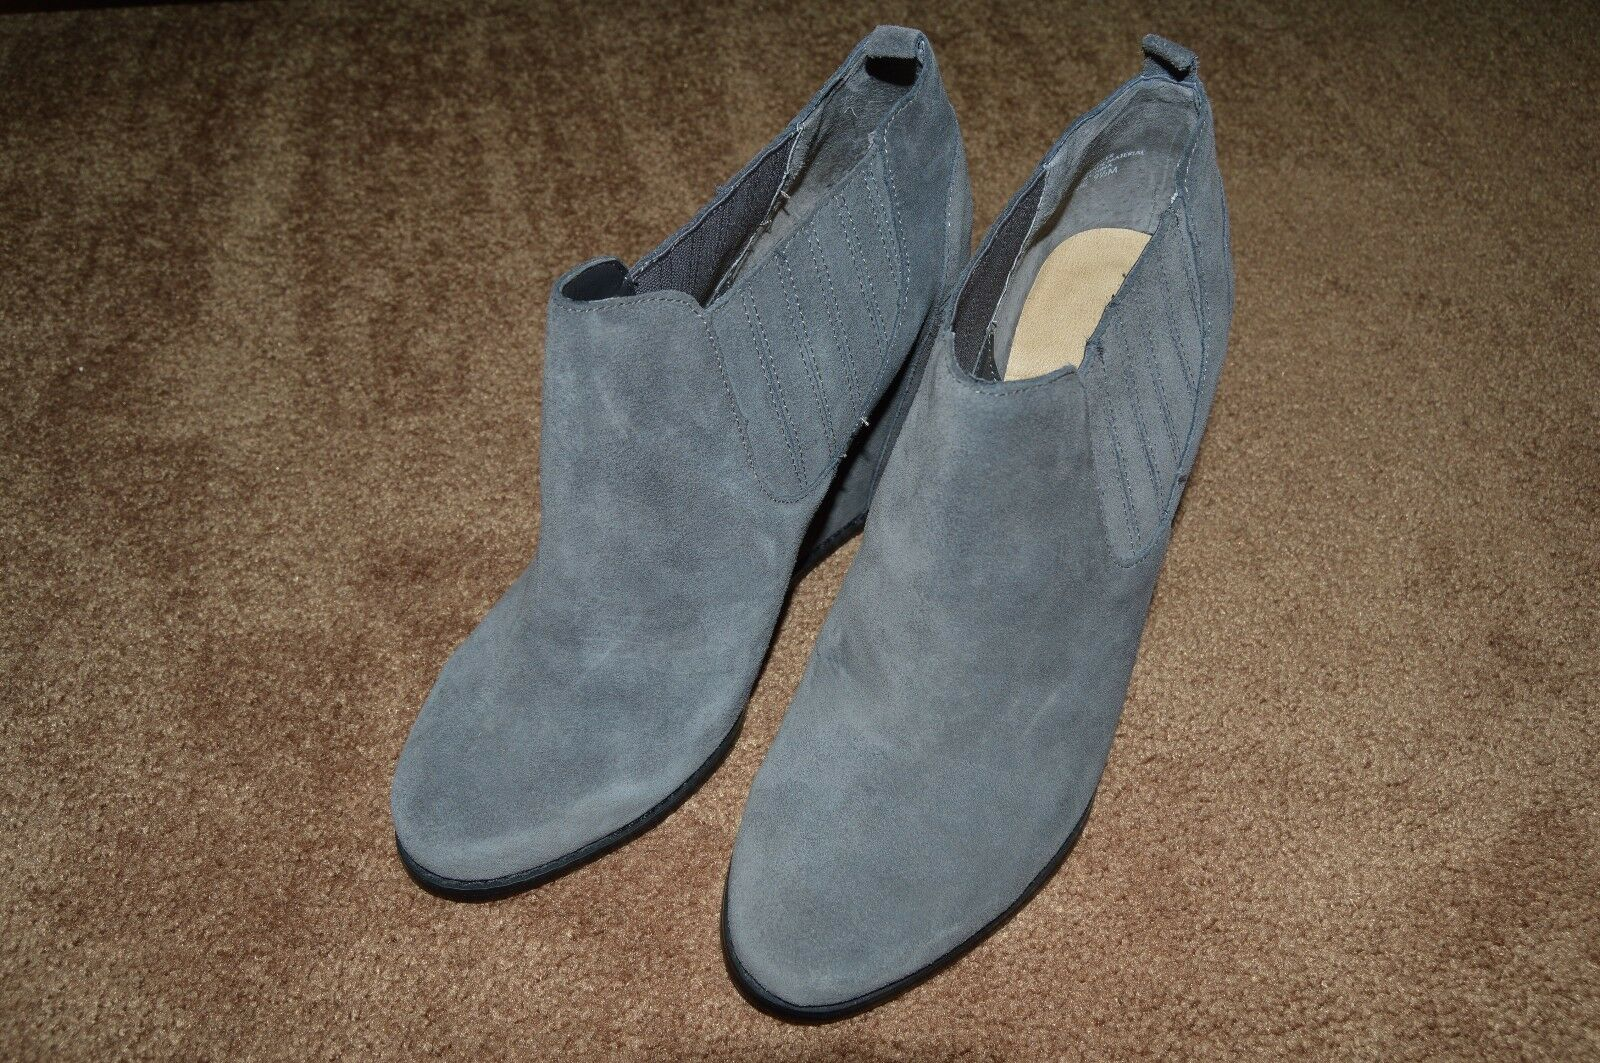 Audrey Brooke Winnie Ankle Booties Dark Gray Suede Wedge Shoes Boots Sz 9.5 M